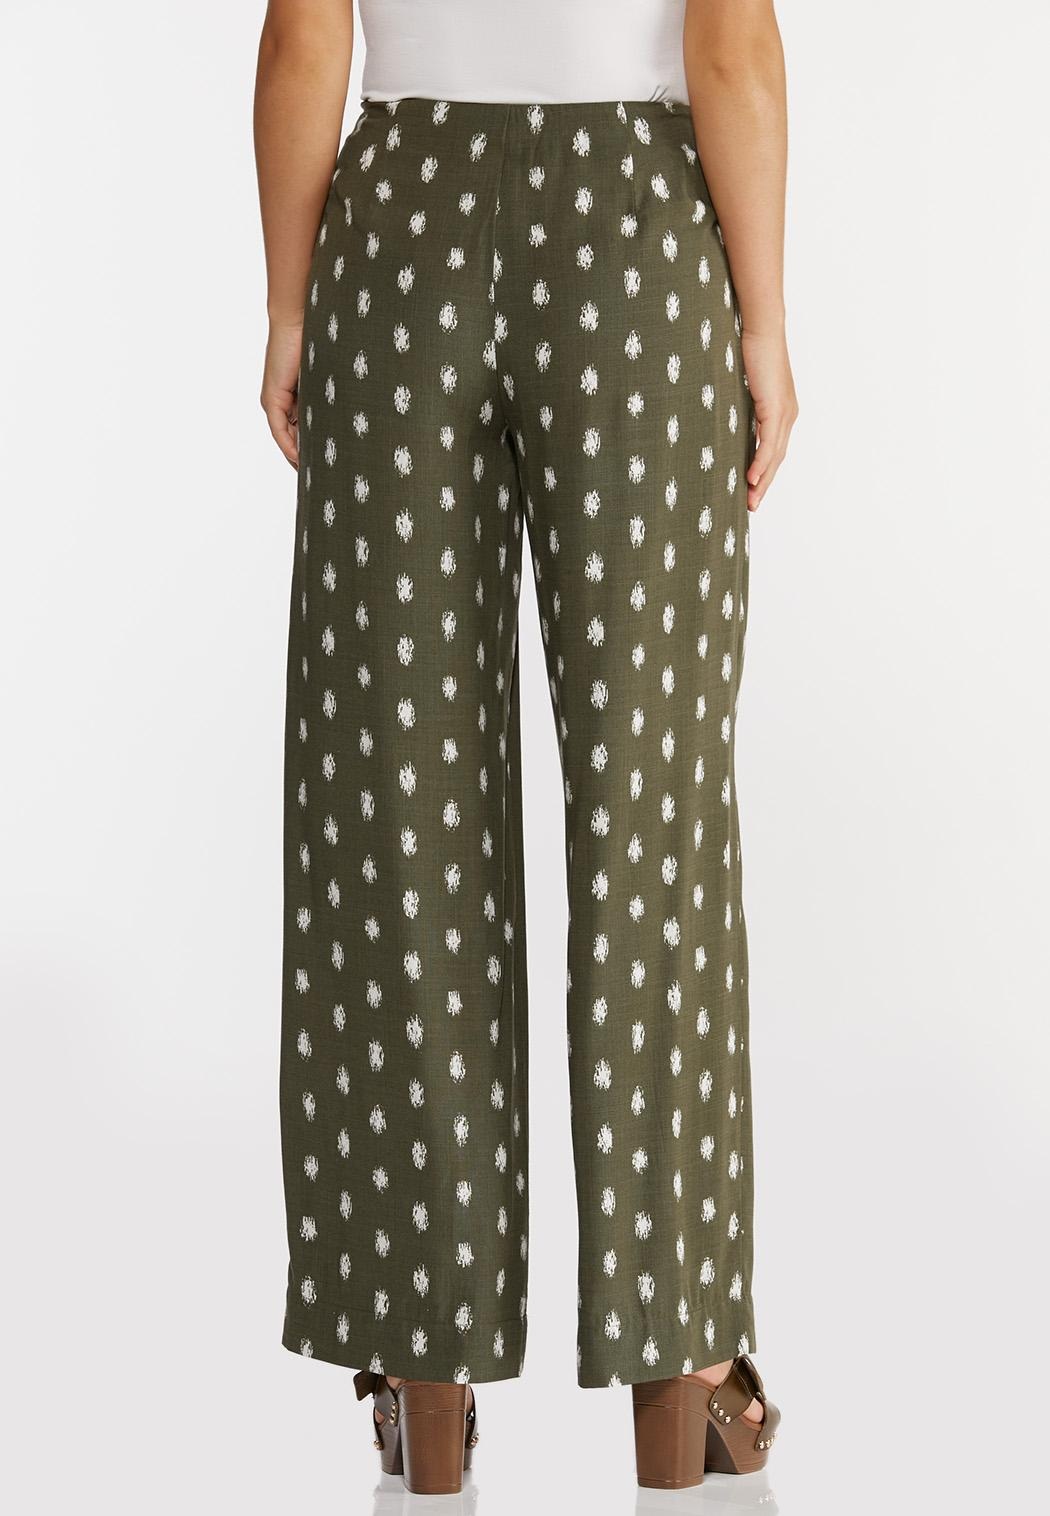 Dotted Olive Pants (Item #44295474)